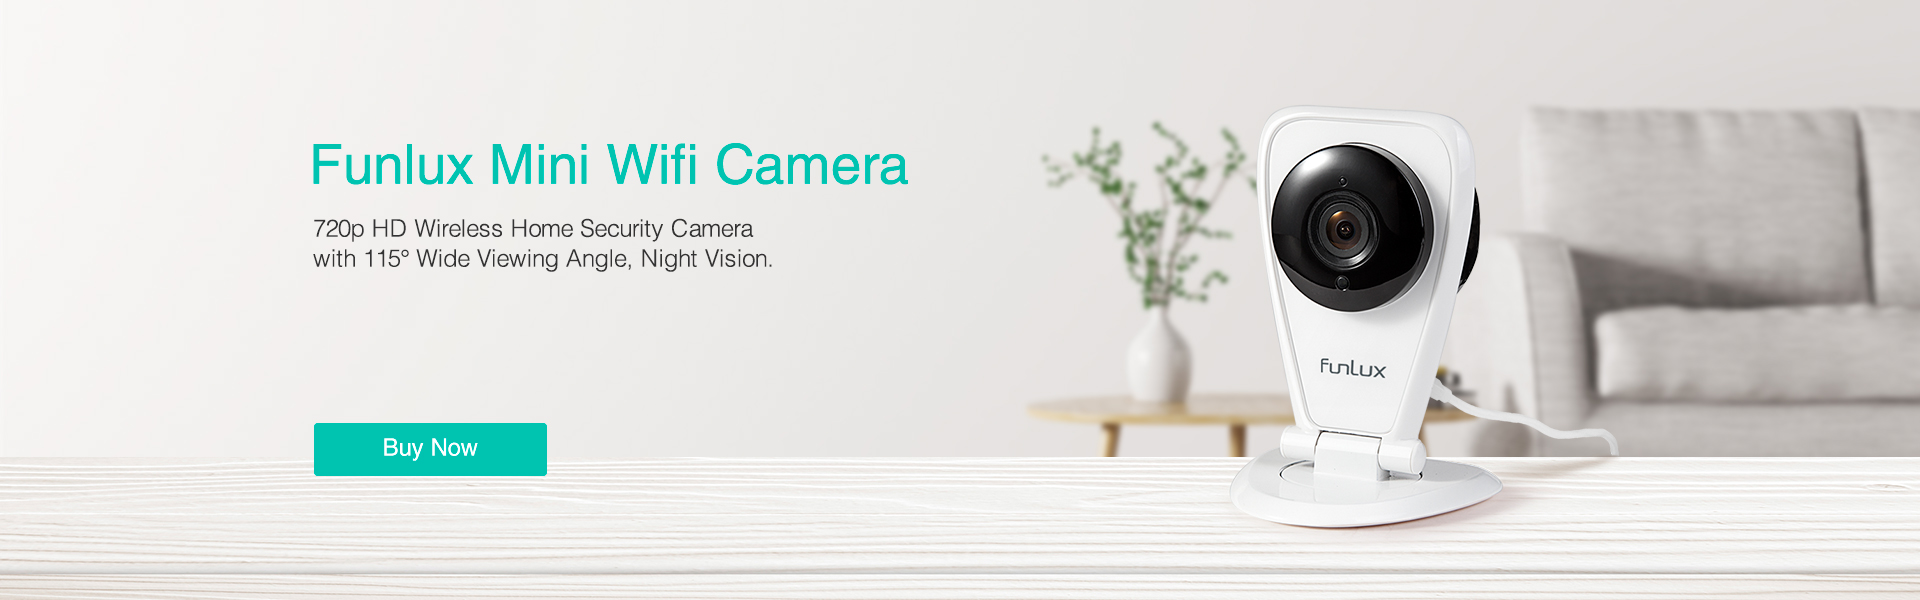 funlux wireless camera system